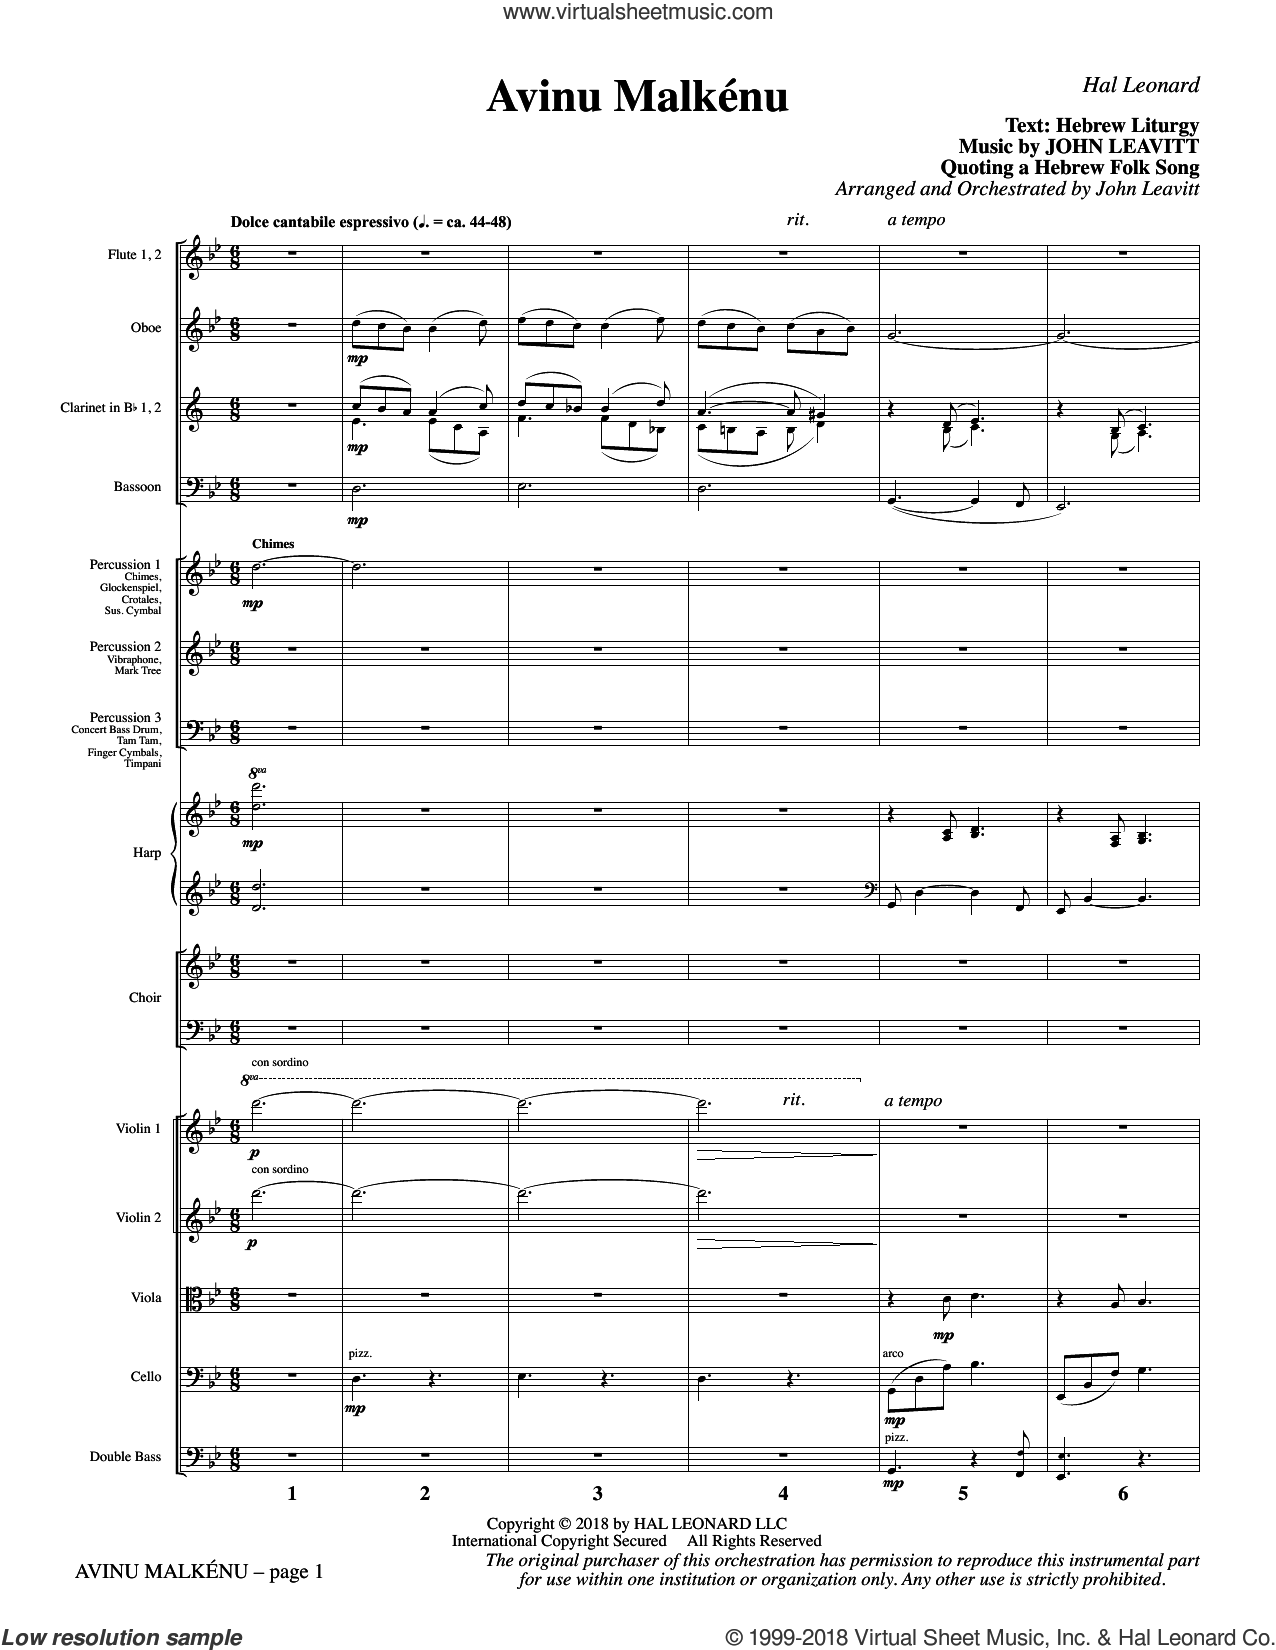 Avinu Malkenu (COMPLETE) sheet music for orchestra/band (chamber ensemble) by John Leavitt, Hebrew Liturgy and Jewish Folksong, intermediate skill level